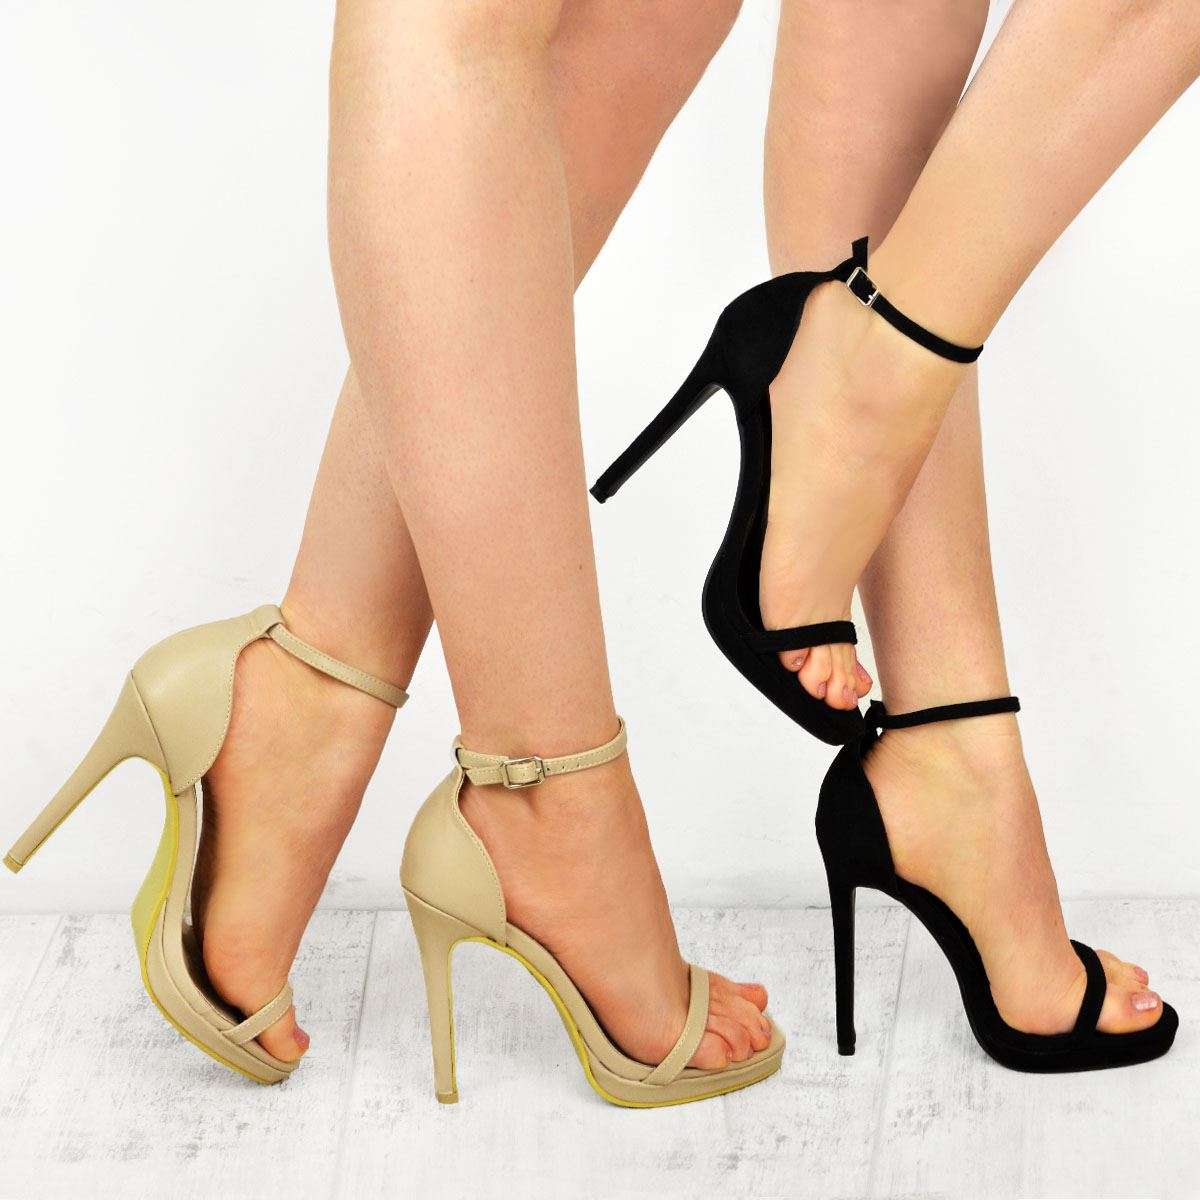 cbc25565 Image is loading Womens-Ladies-Stiletto-High-Heel-Party-Platform-Strappy-